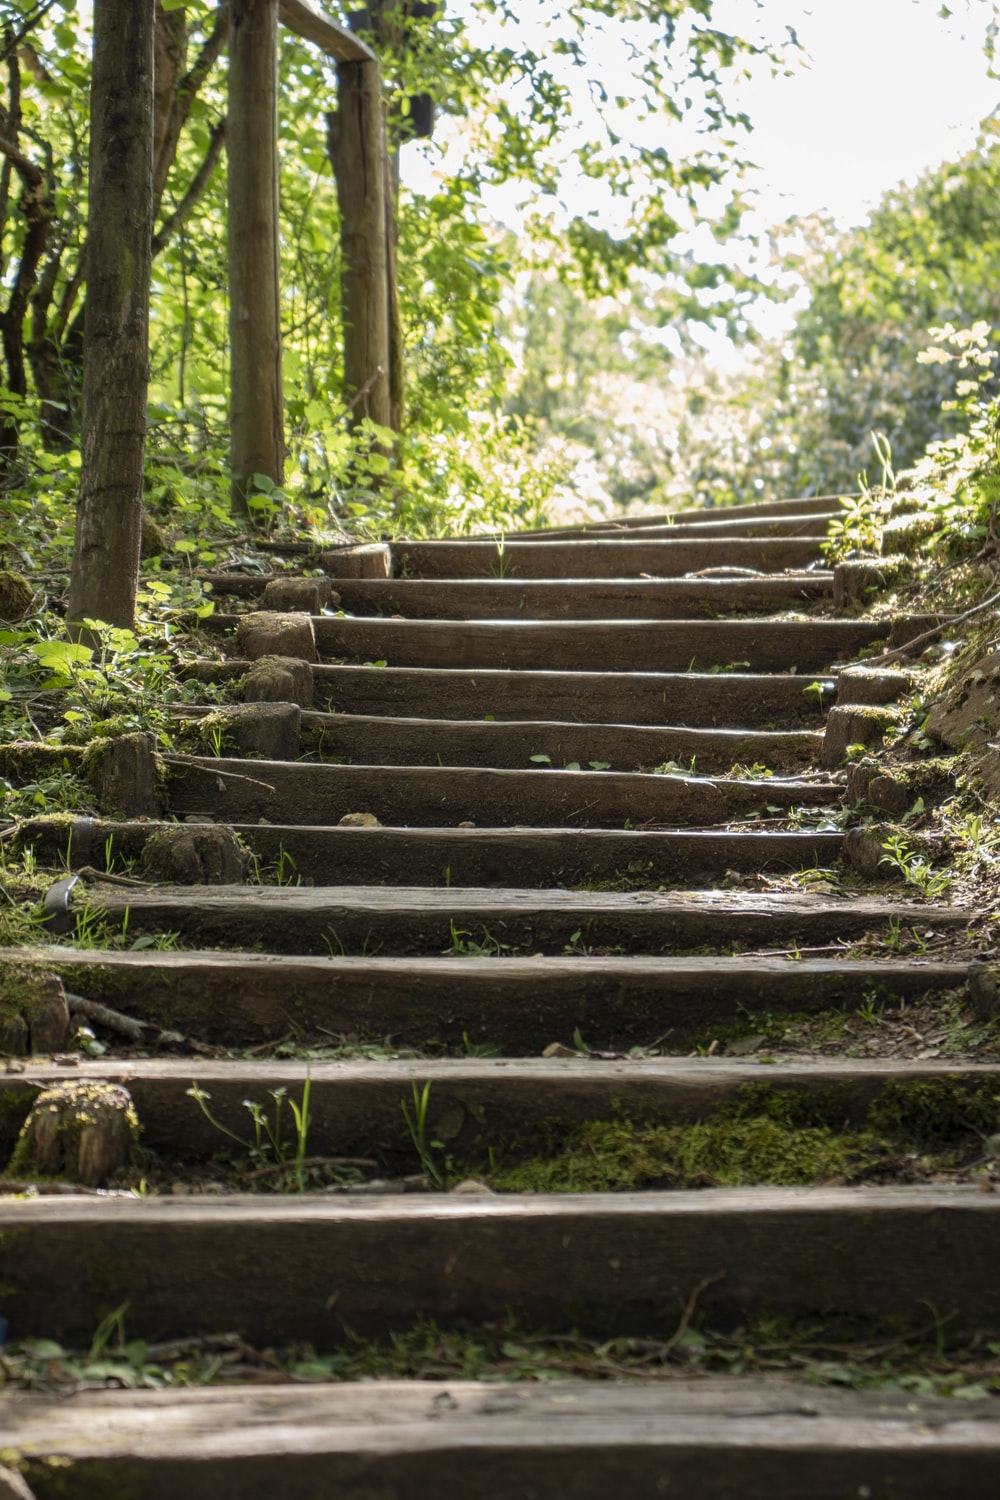 brown wooden stairs in forest during daytime